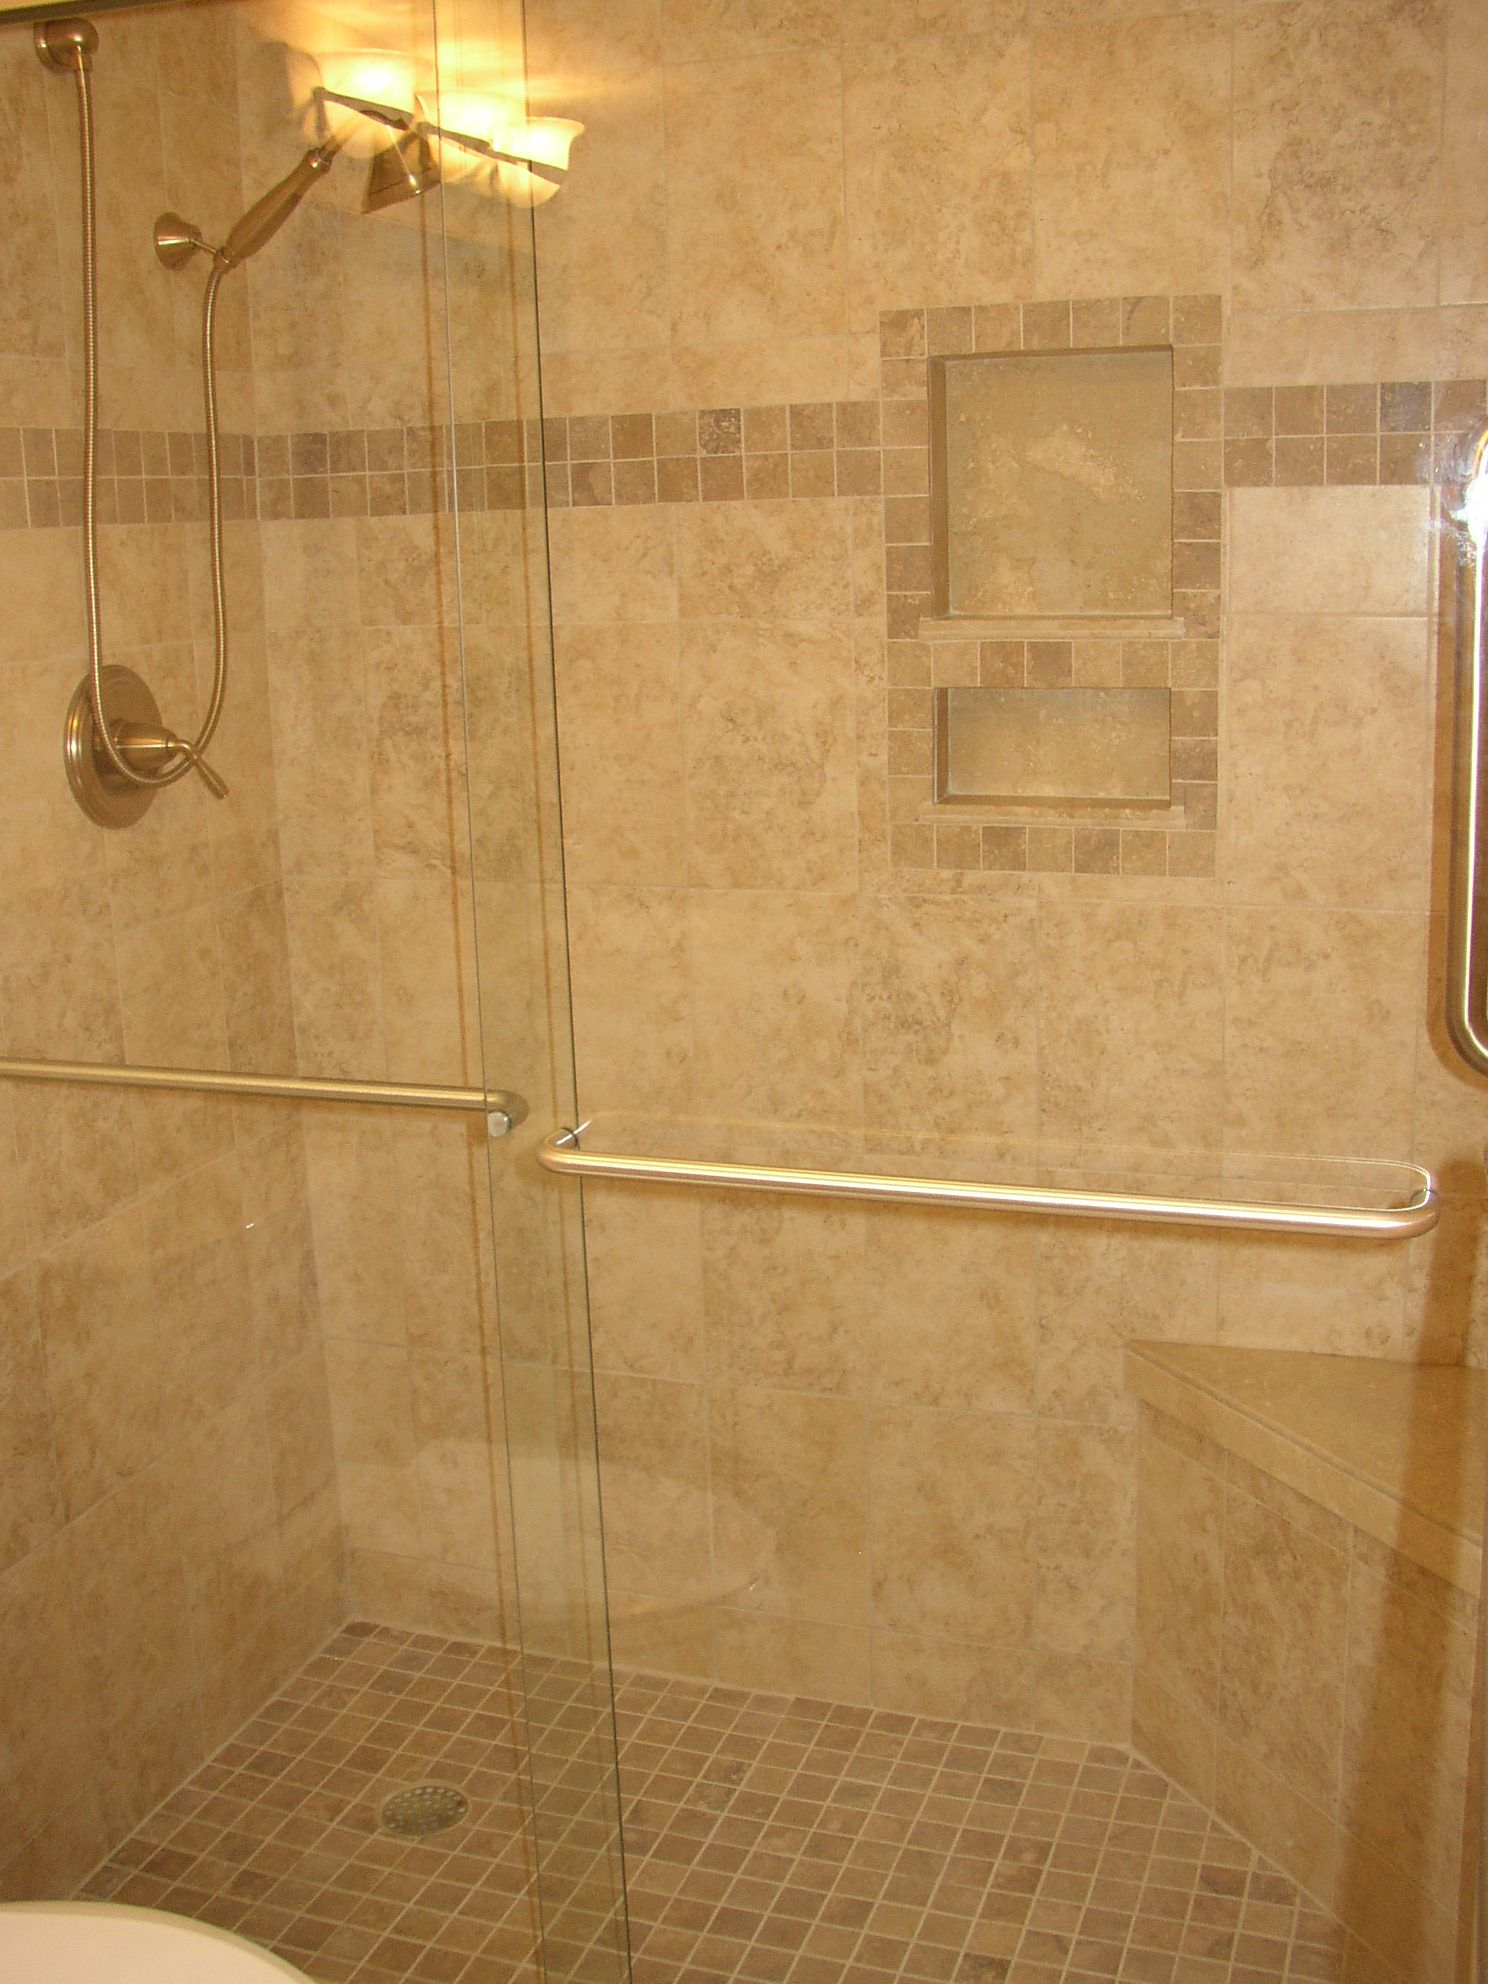 Dazzling Shower Niche Bath Storage Area Basic Element Tile Shelves Design Idea